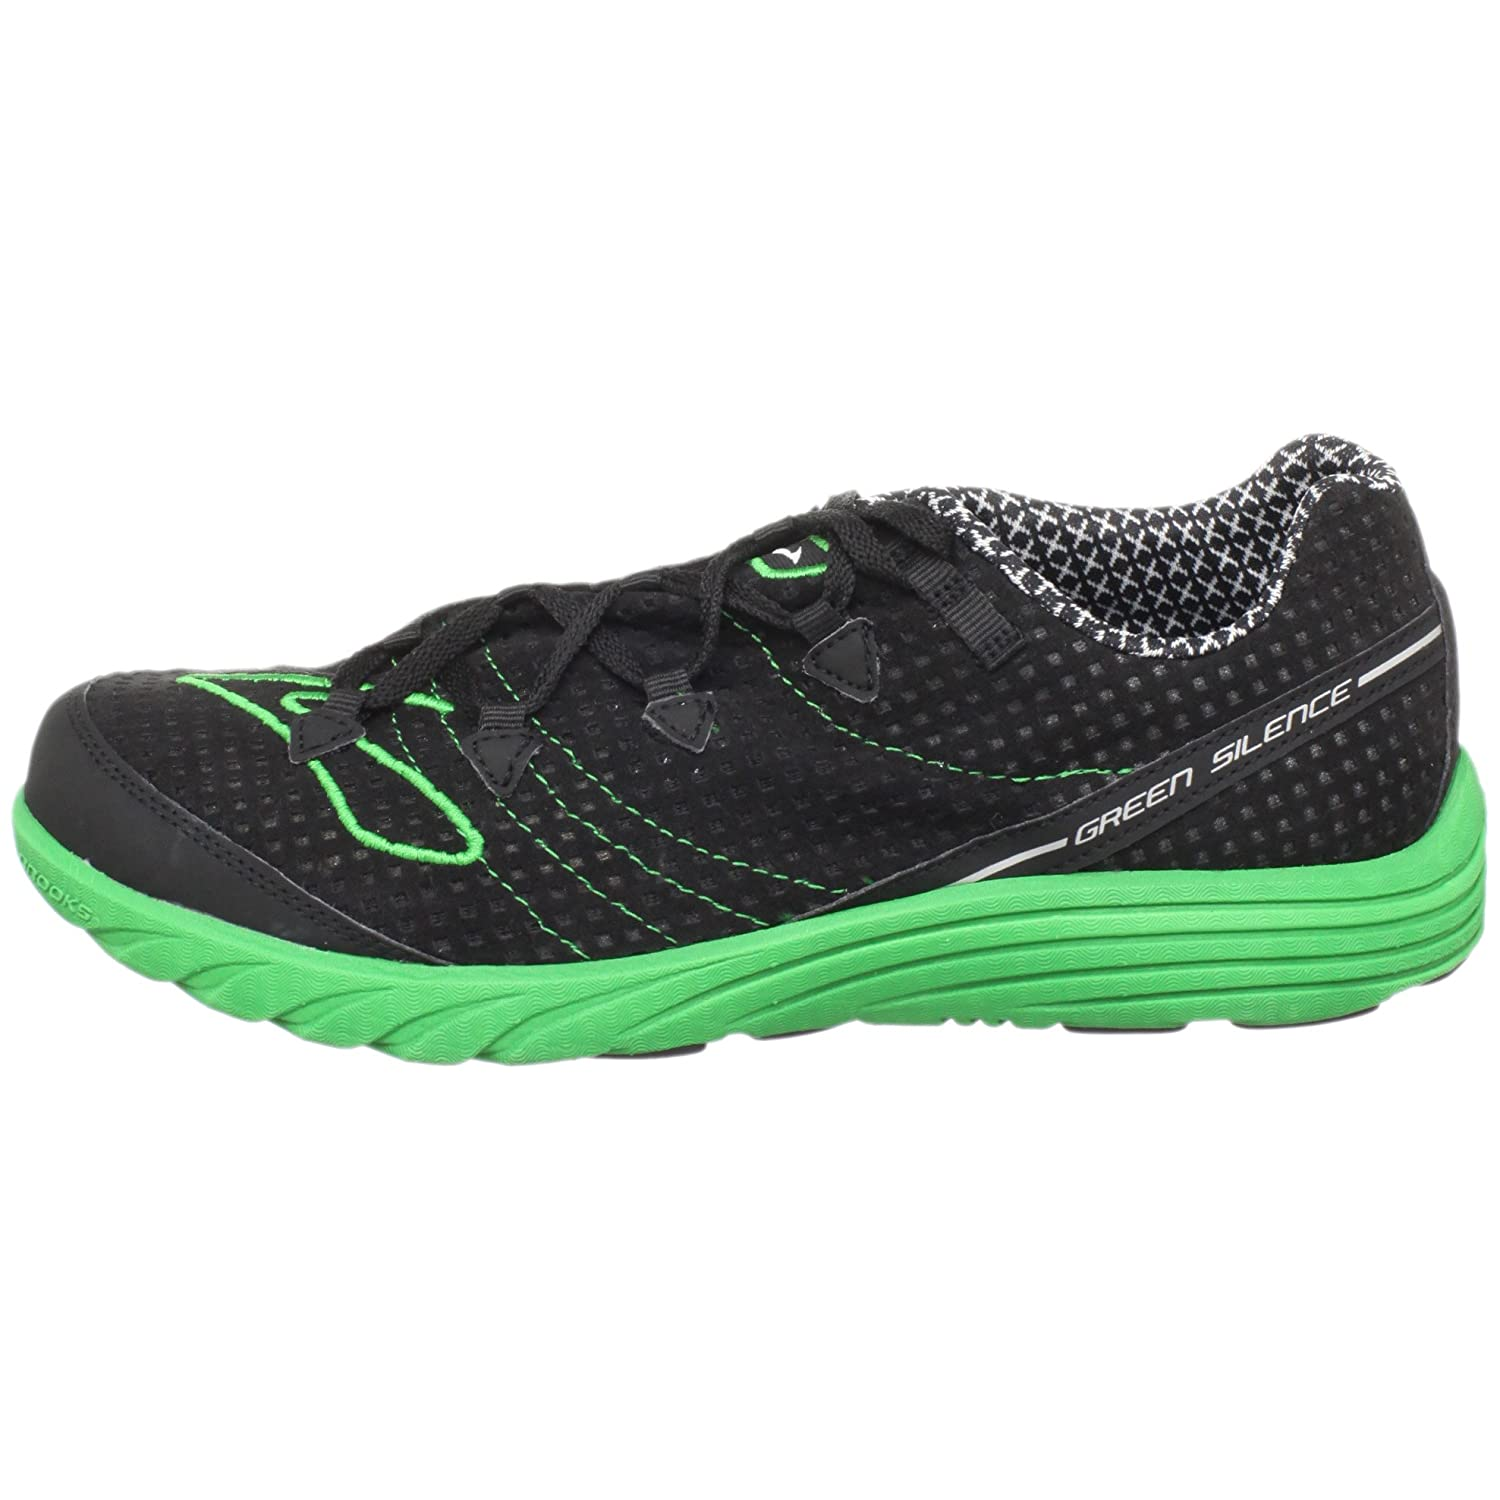 f8a7a6beb38 Brooks Men s M Green Silence Black Emerald Green Trainer 1100961D316 6.5  UK  Amazon.co.uk  Shoes   Bags